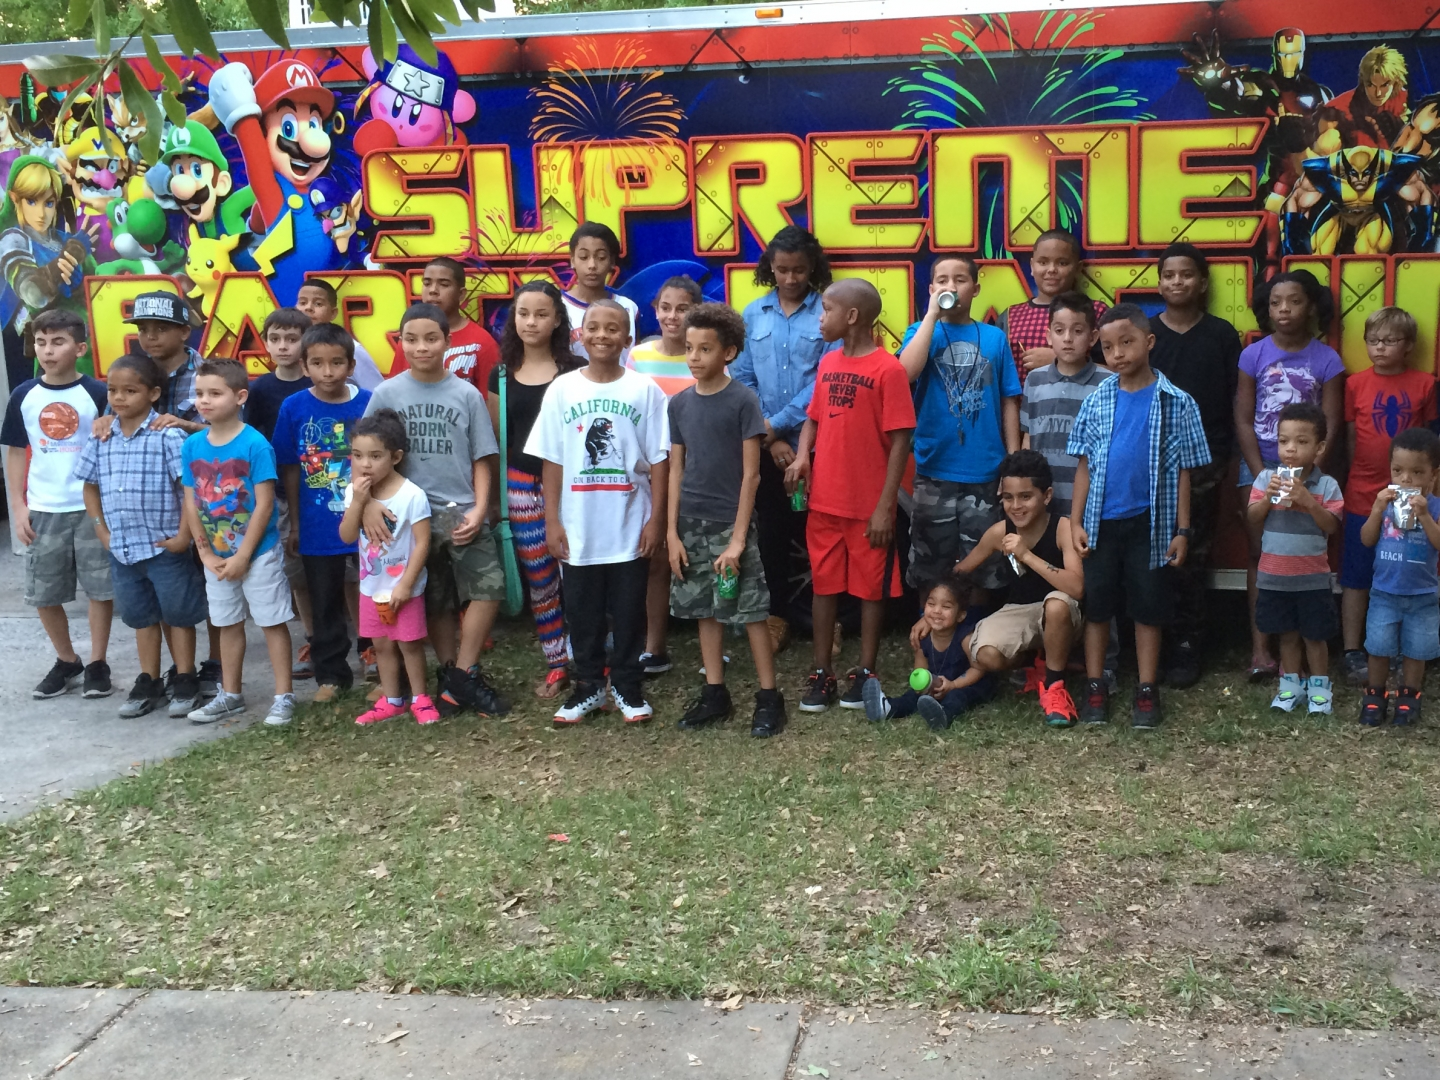 Group shot in front of the Supreme Party Machine